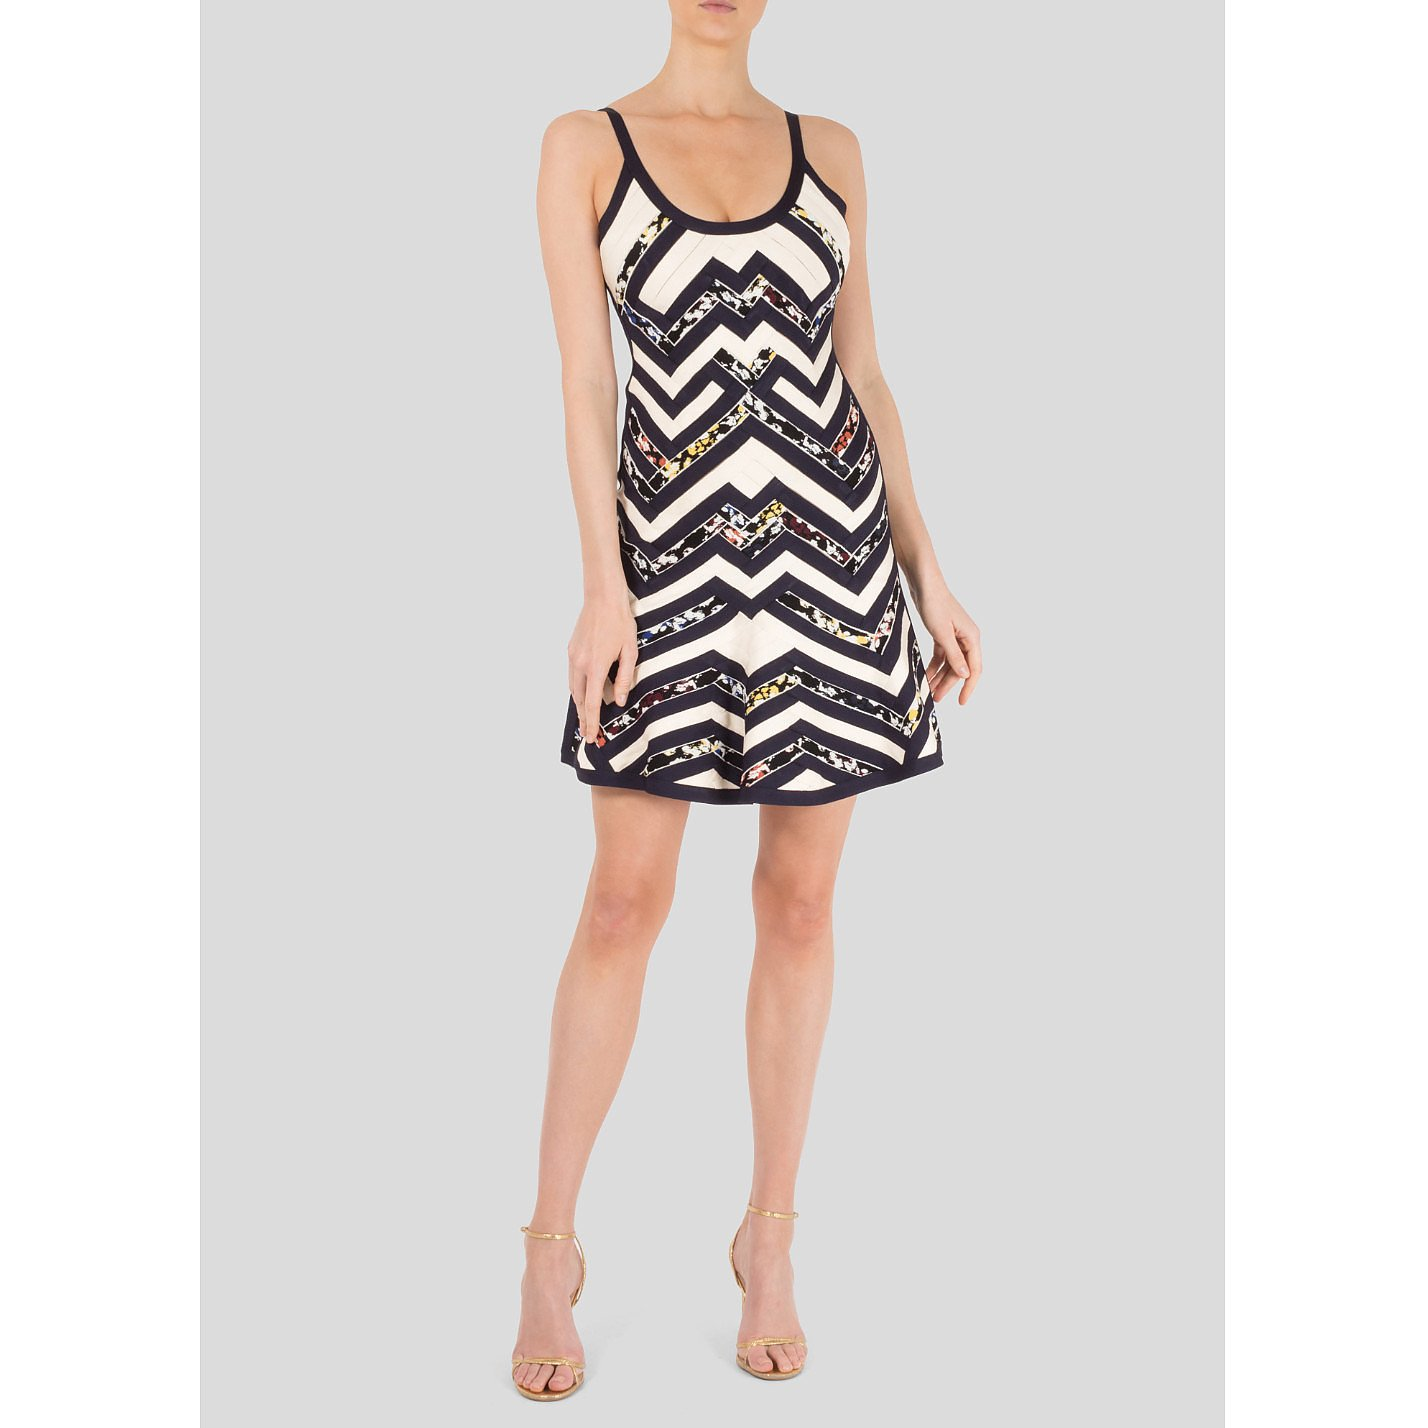 Herve Leger Zig-Zag Dress